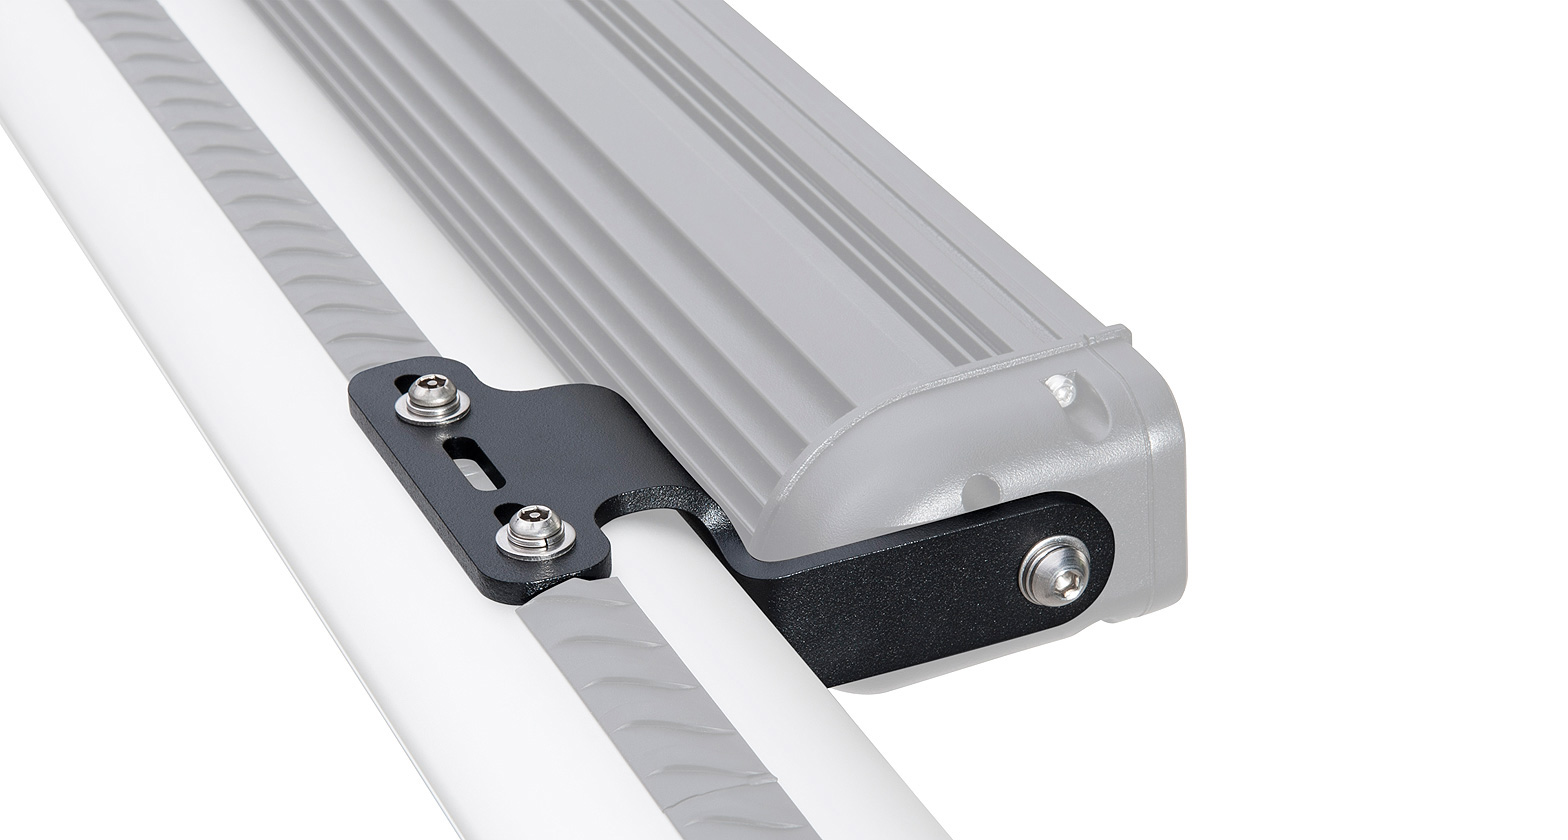 Va and hd led light brackets 43174 rhino rack 43174 va and hd led light bracket rhino rack aloadofball Image collections